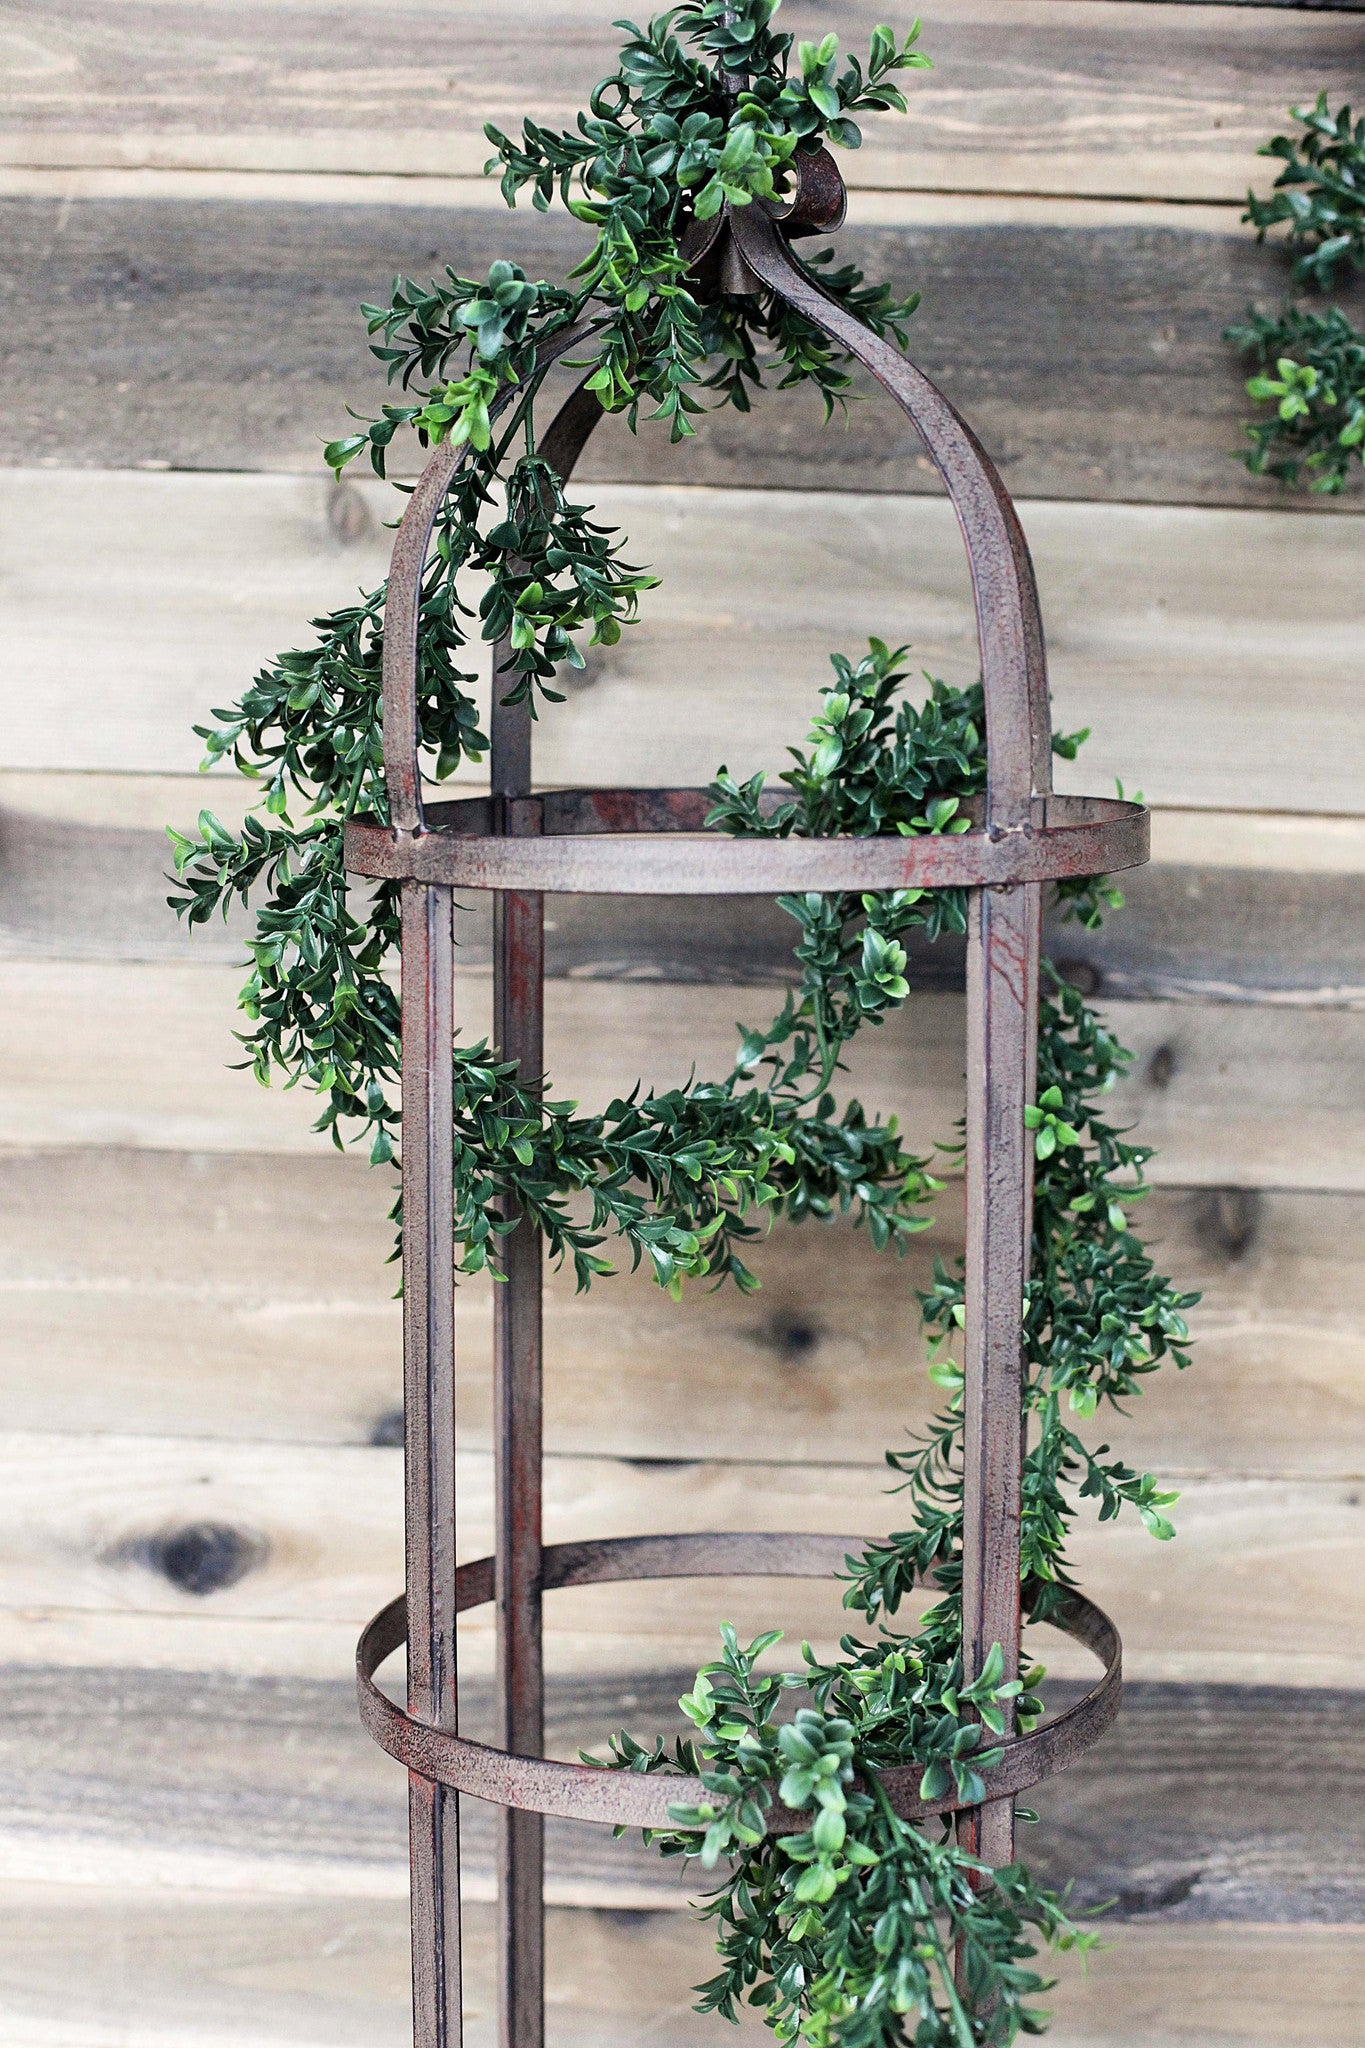 6-Foot Faux Boxwood Garland!